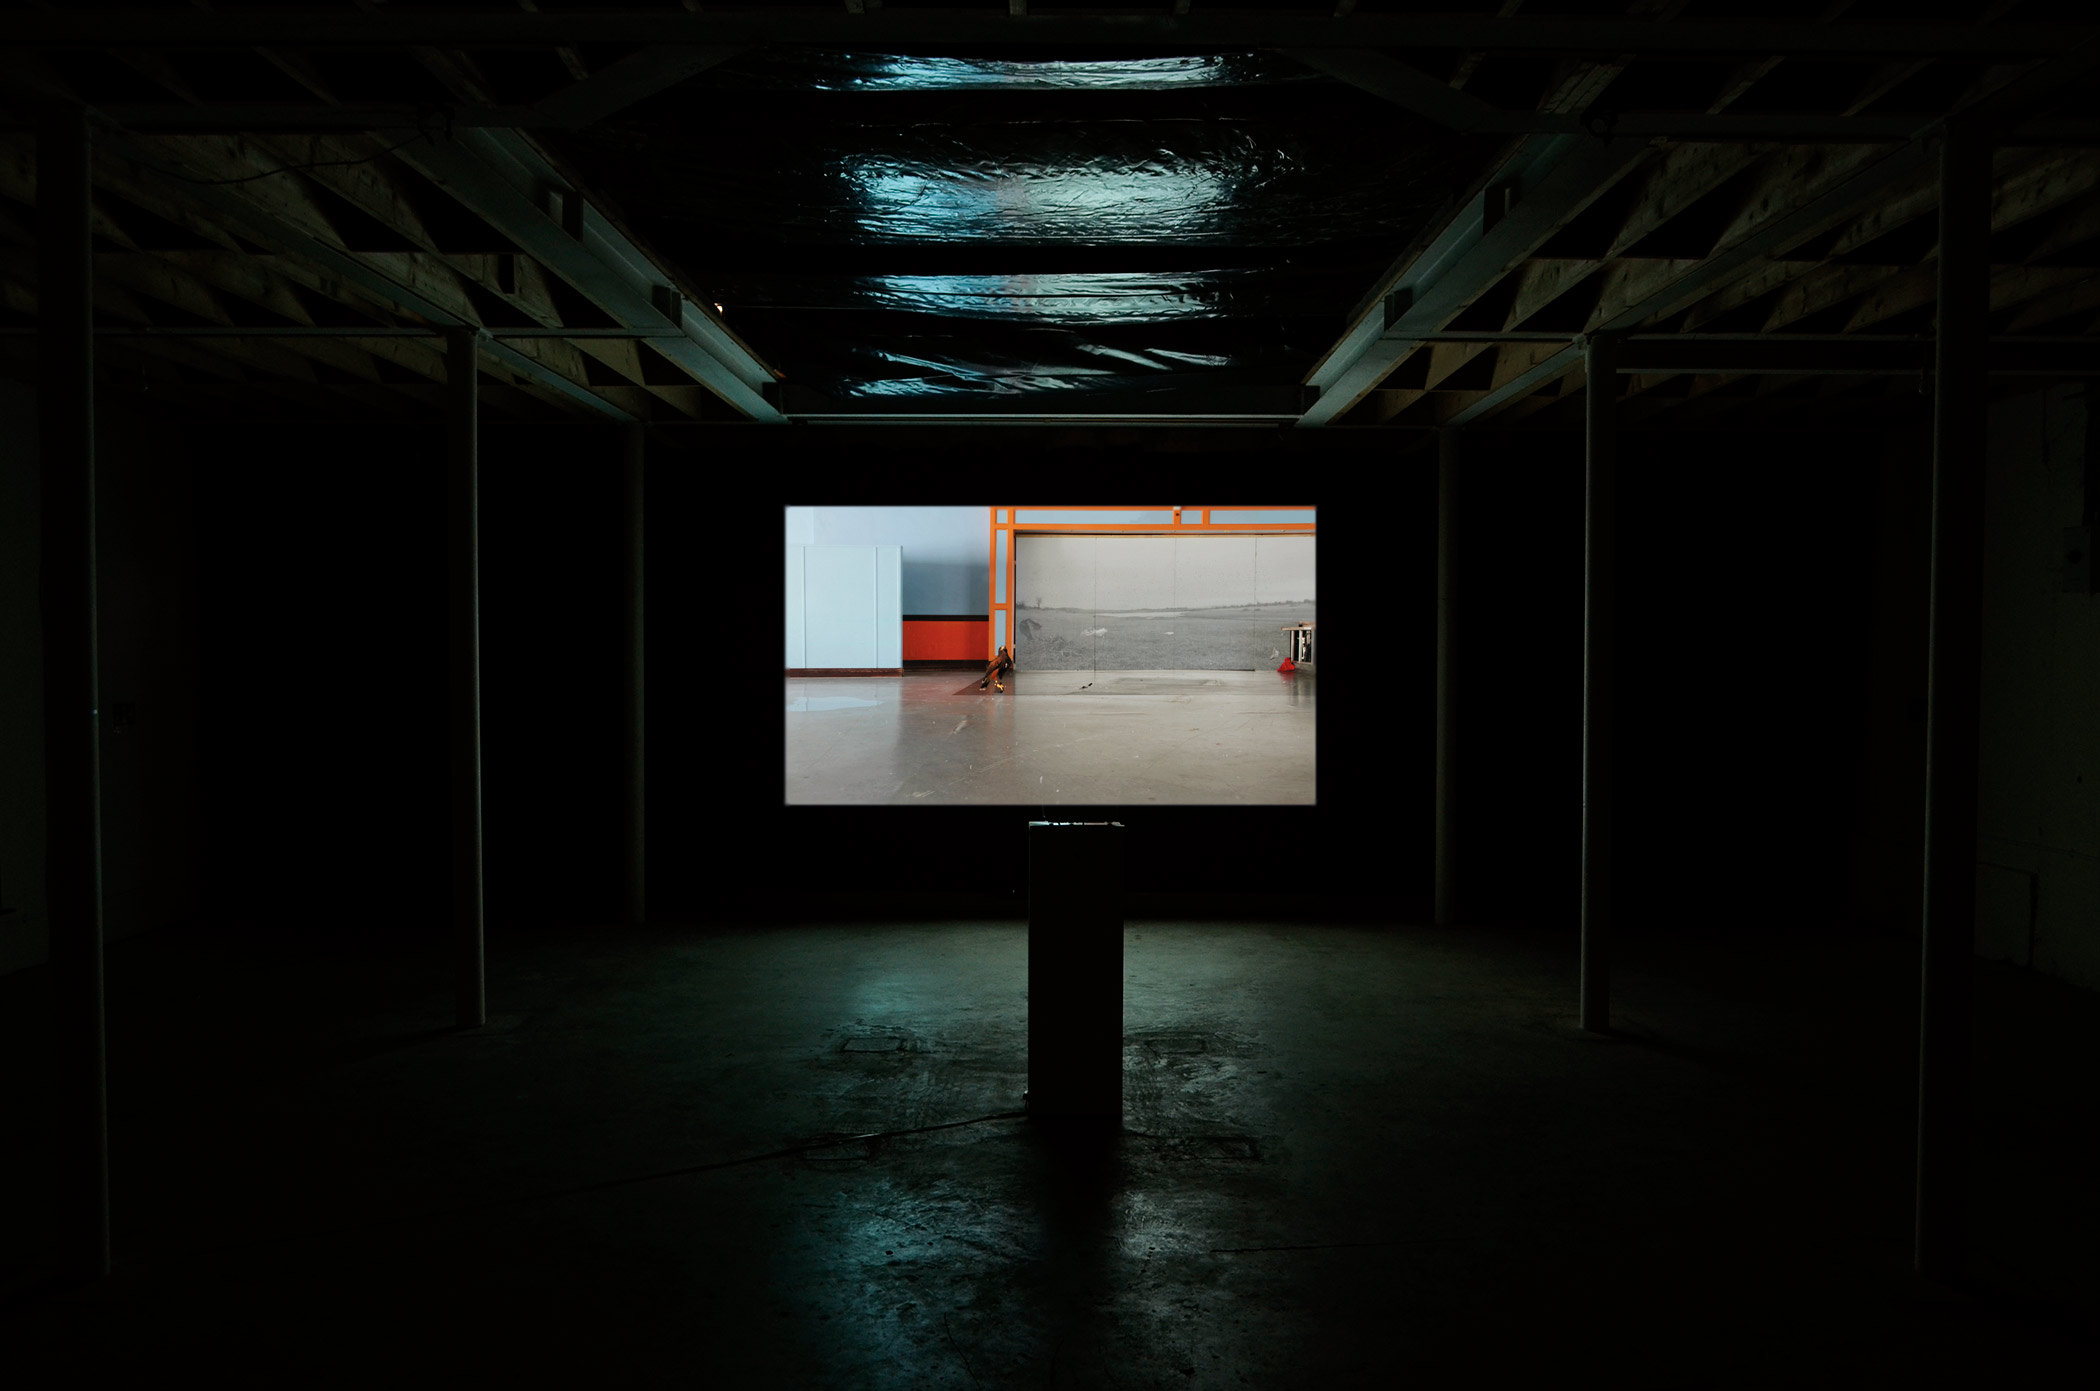 Drogheda Arts Festival, in partnership with Nexus Arts, Co. Louth, Ireland, 2015 (solo show).